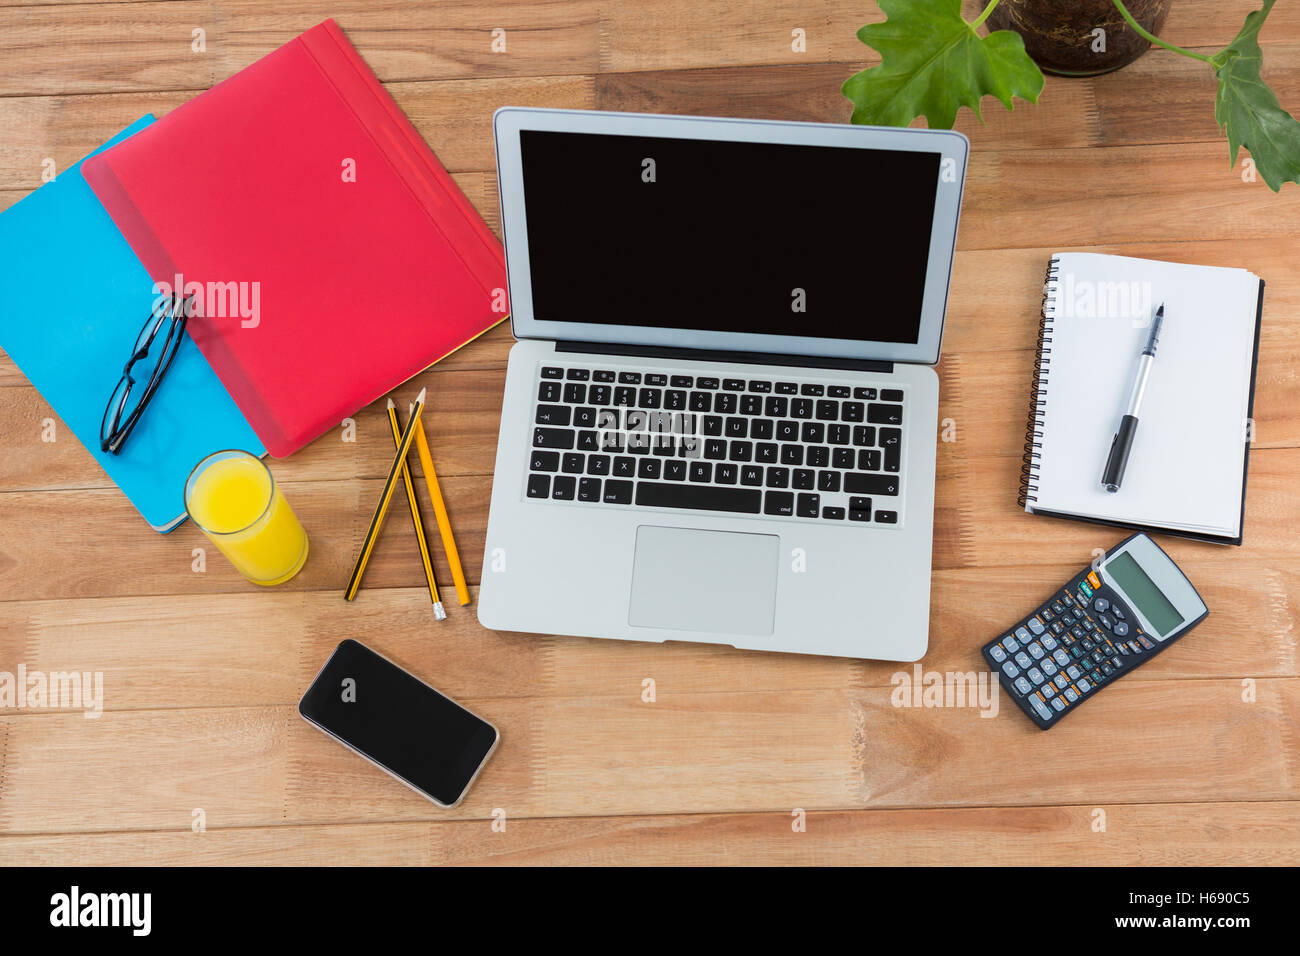 Office Accessories With Mobile Phone And Laptop